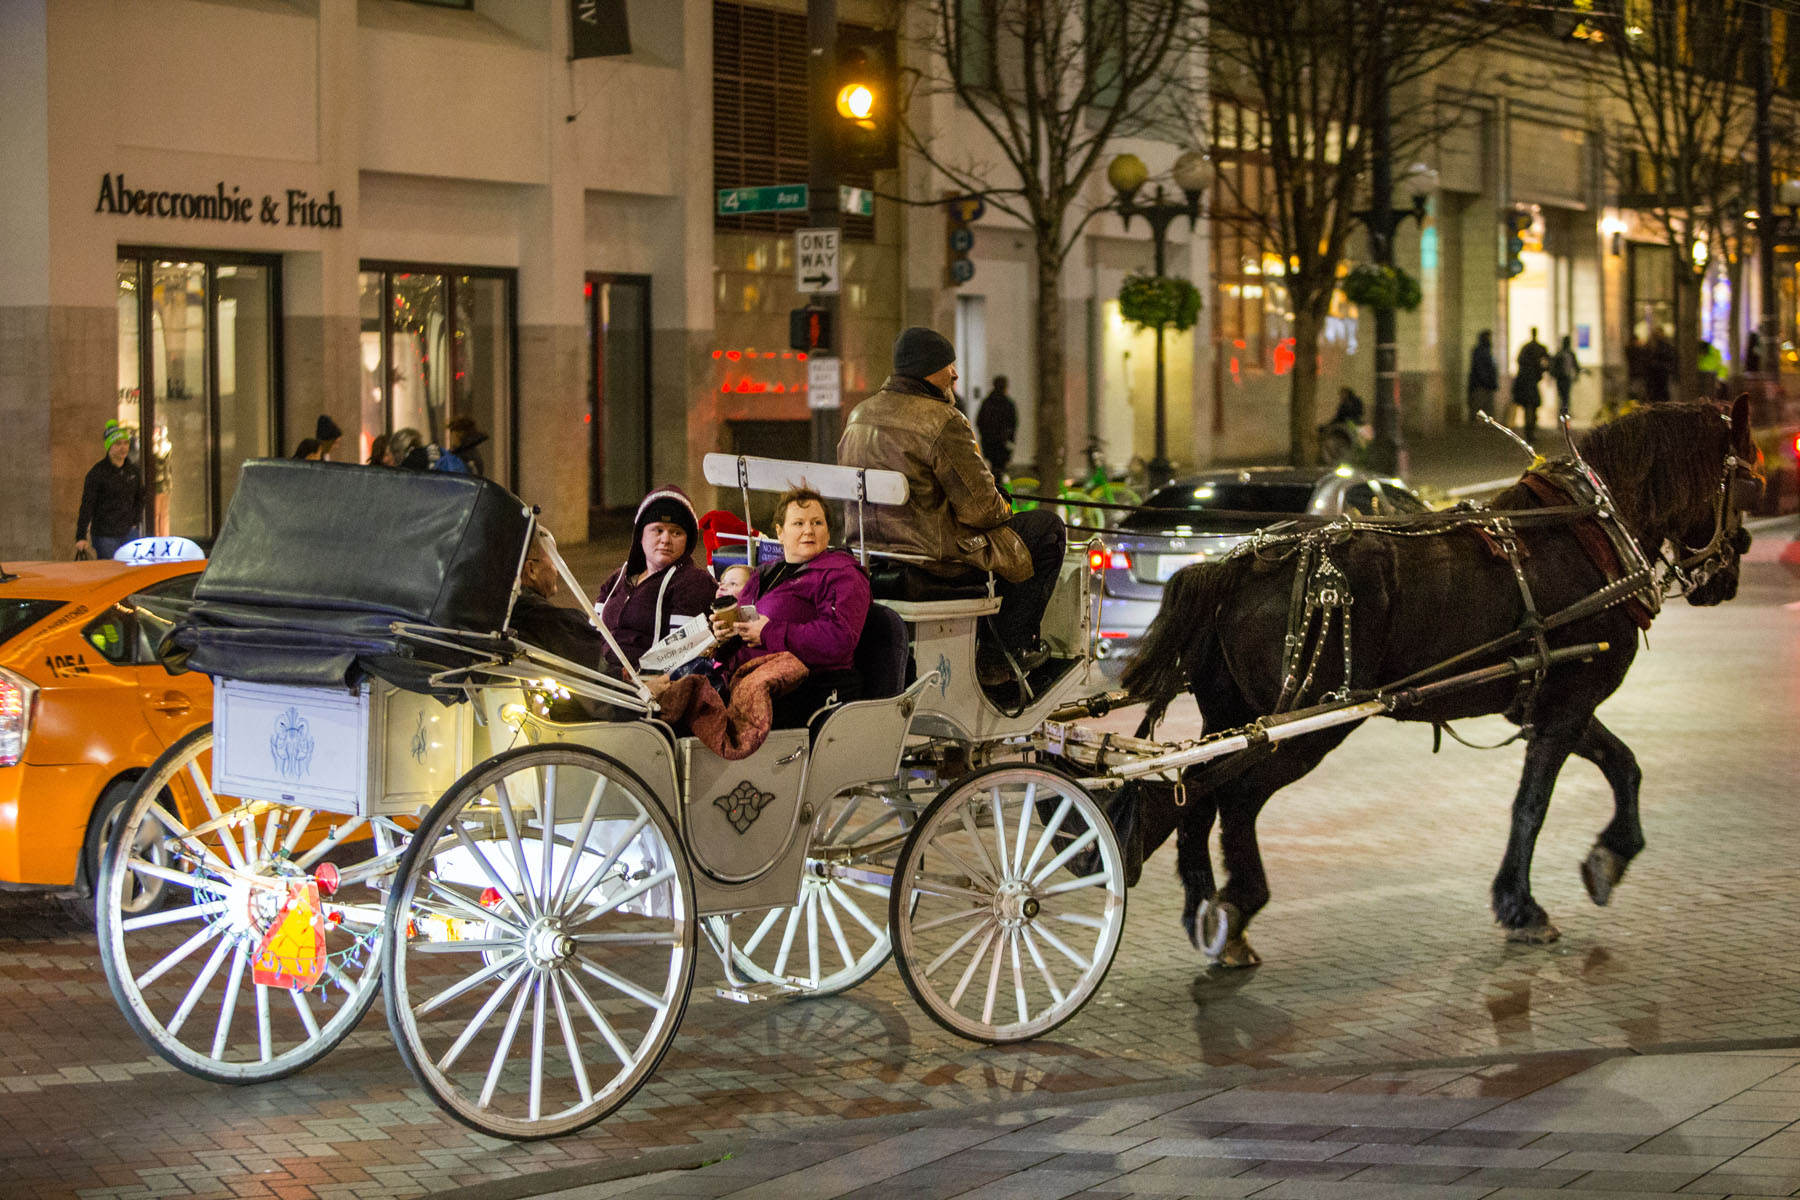 Steve Beckmann, Owner of Sealth Horse Carriages, and Amos, his 11 year-old Percheron draft horse, haul customers around Westlake Center in Seattle, WA on December 9, 2017. Beckmann says he was the first horse and carriage business in Seattle and now, 42 years later, he is the only one left. (© Karen Ducey) Story published on Crosscut.com and AnimalsNorthwest.com